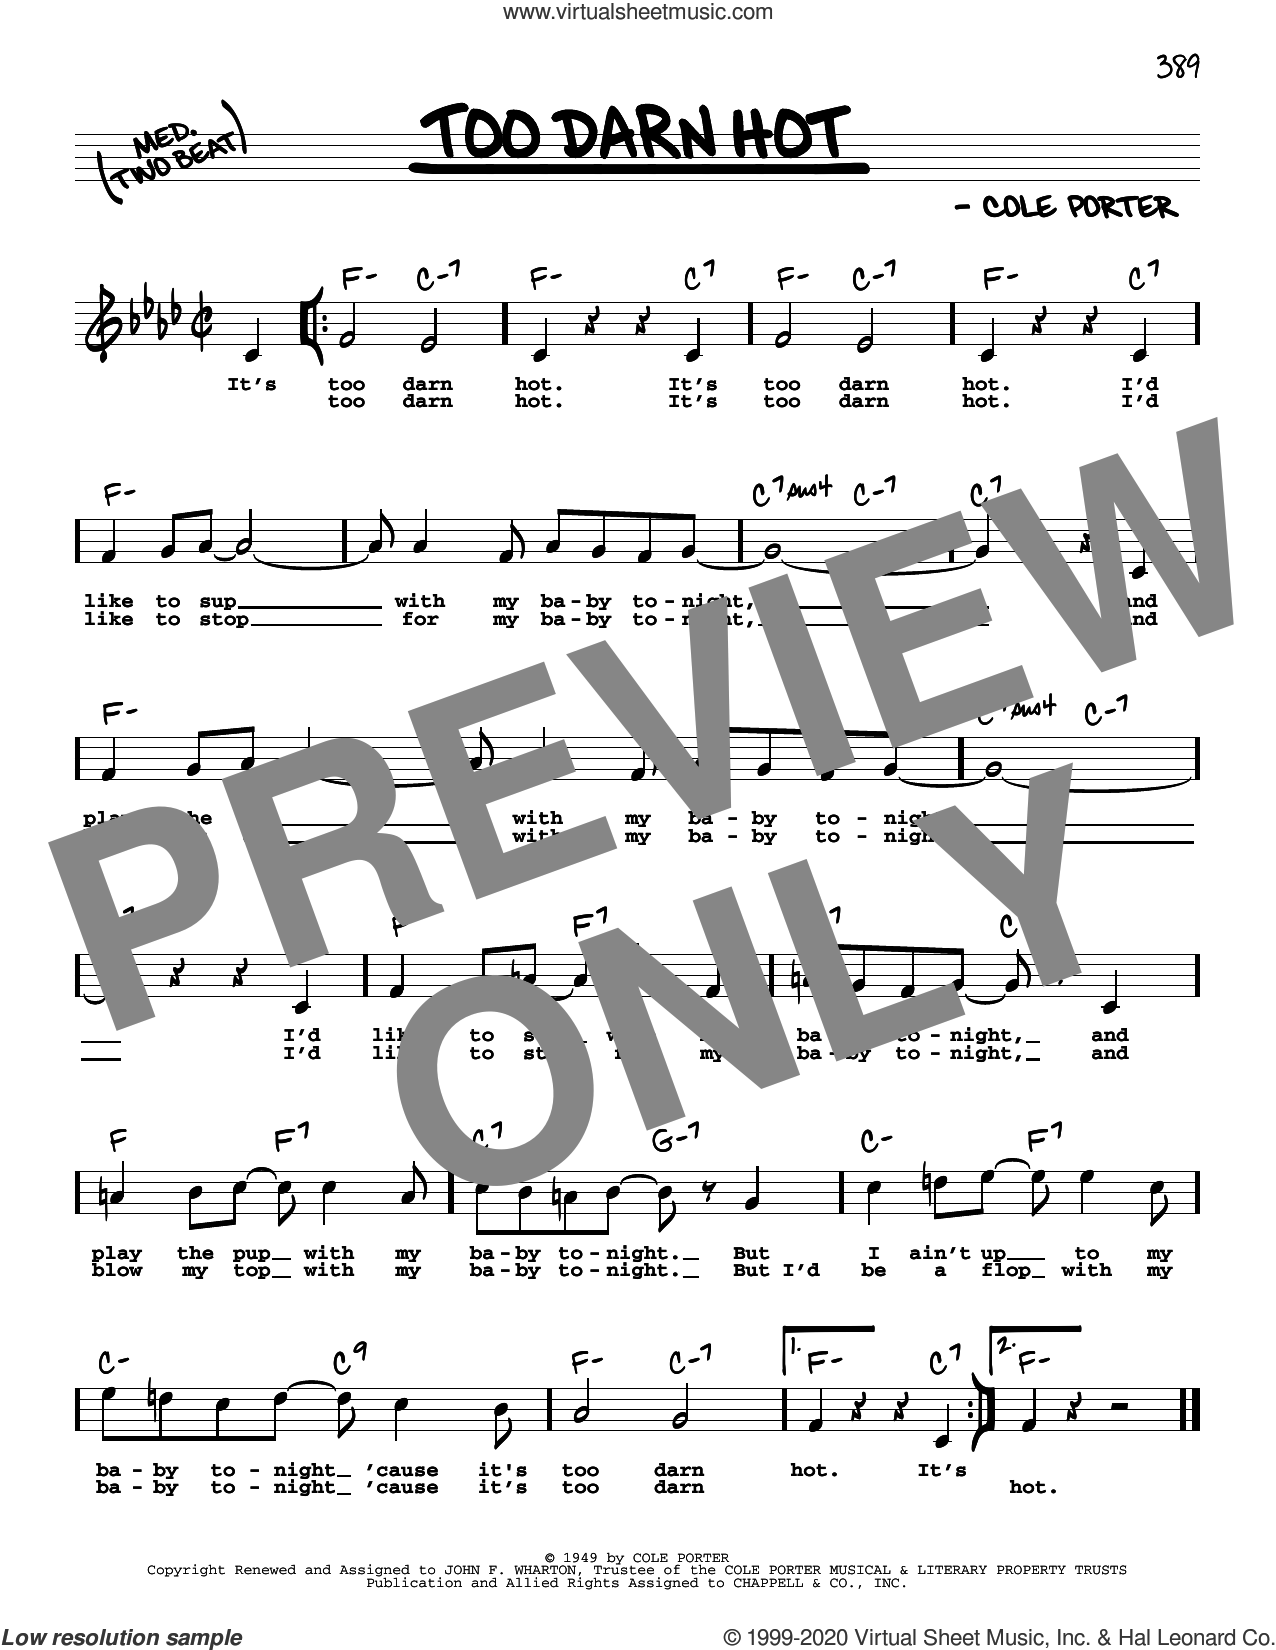 Too Darn Hot (High Voice) sheet music for voice and other instruments (high voice) by Cole Porter, intermediate skill level